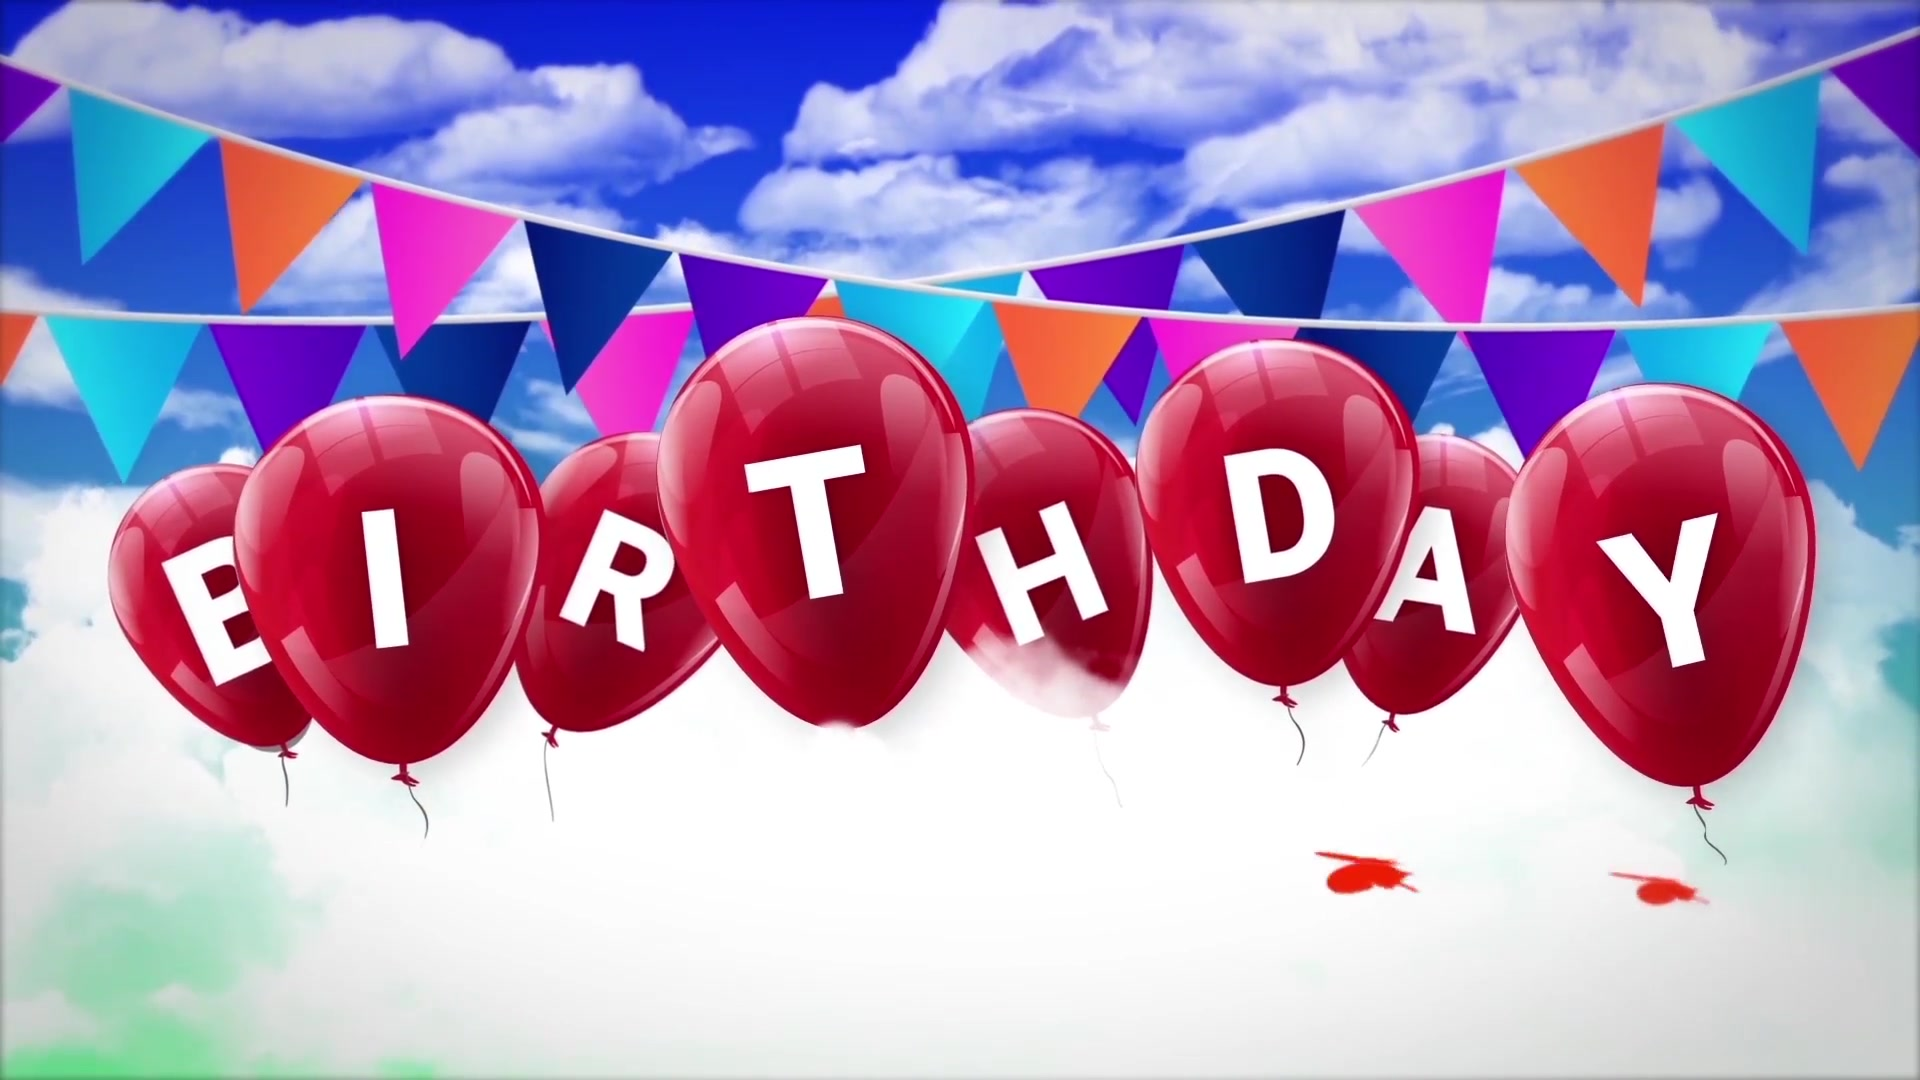 Happy Birthday Opener Videohive 31642133 After Effects Image 6